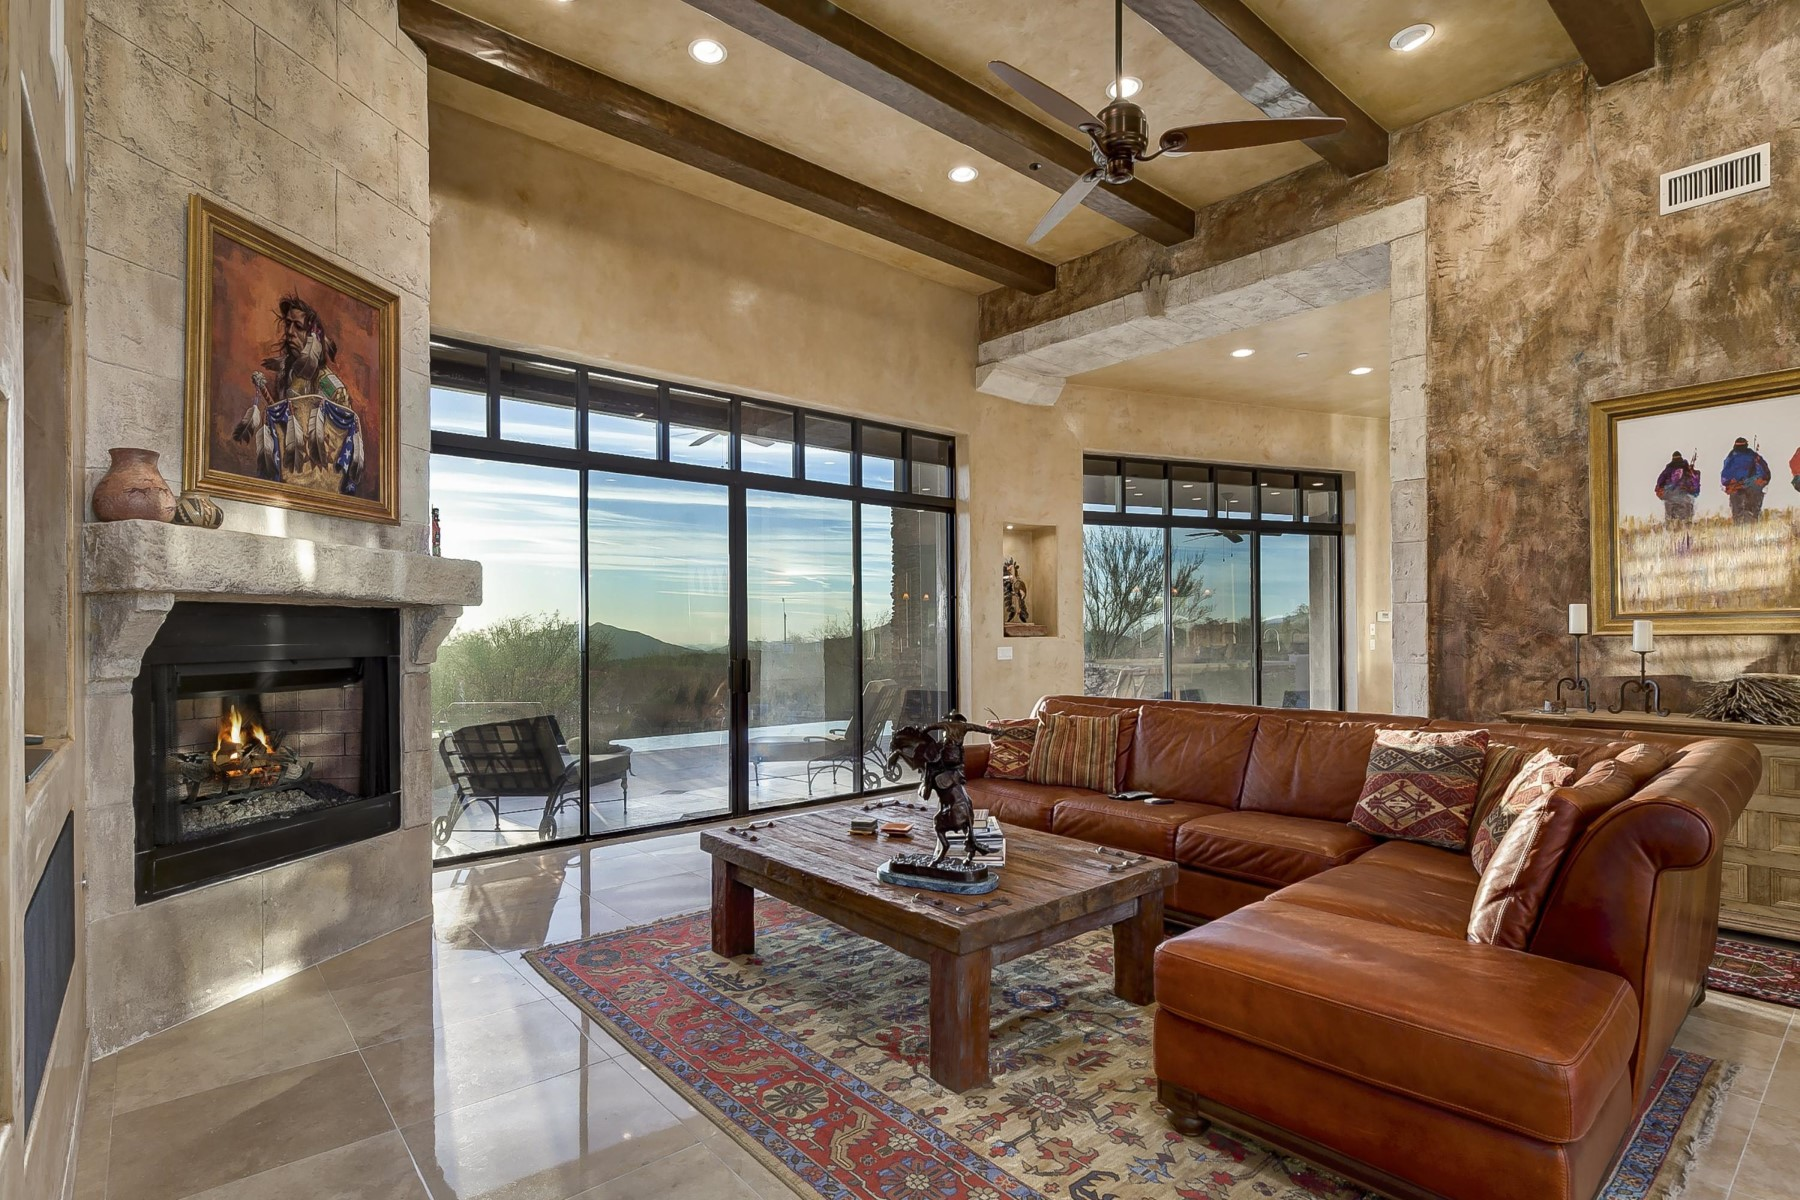 Single Family Home for Sale at Pristine Transitional Southwest home in Desert Mountain 39402 N 106th St, Scottsdale, Arizona, 85262 United States